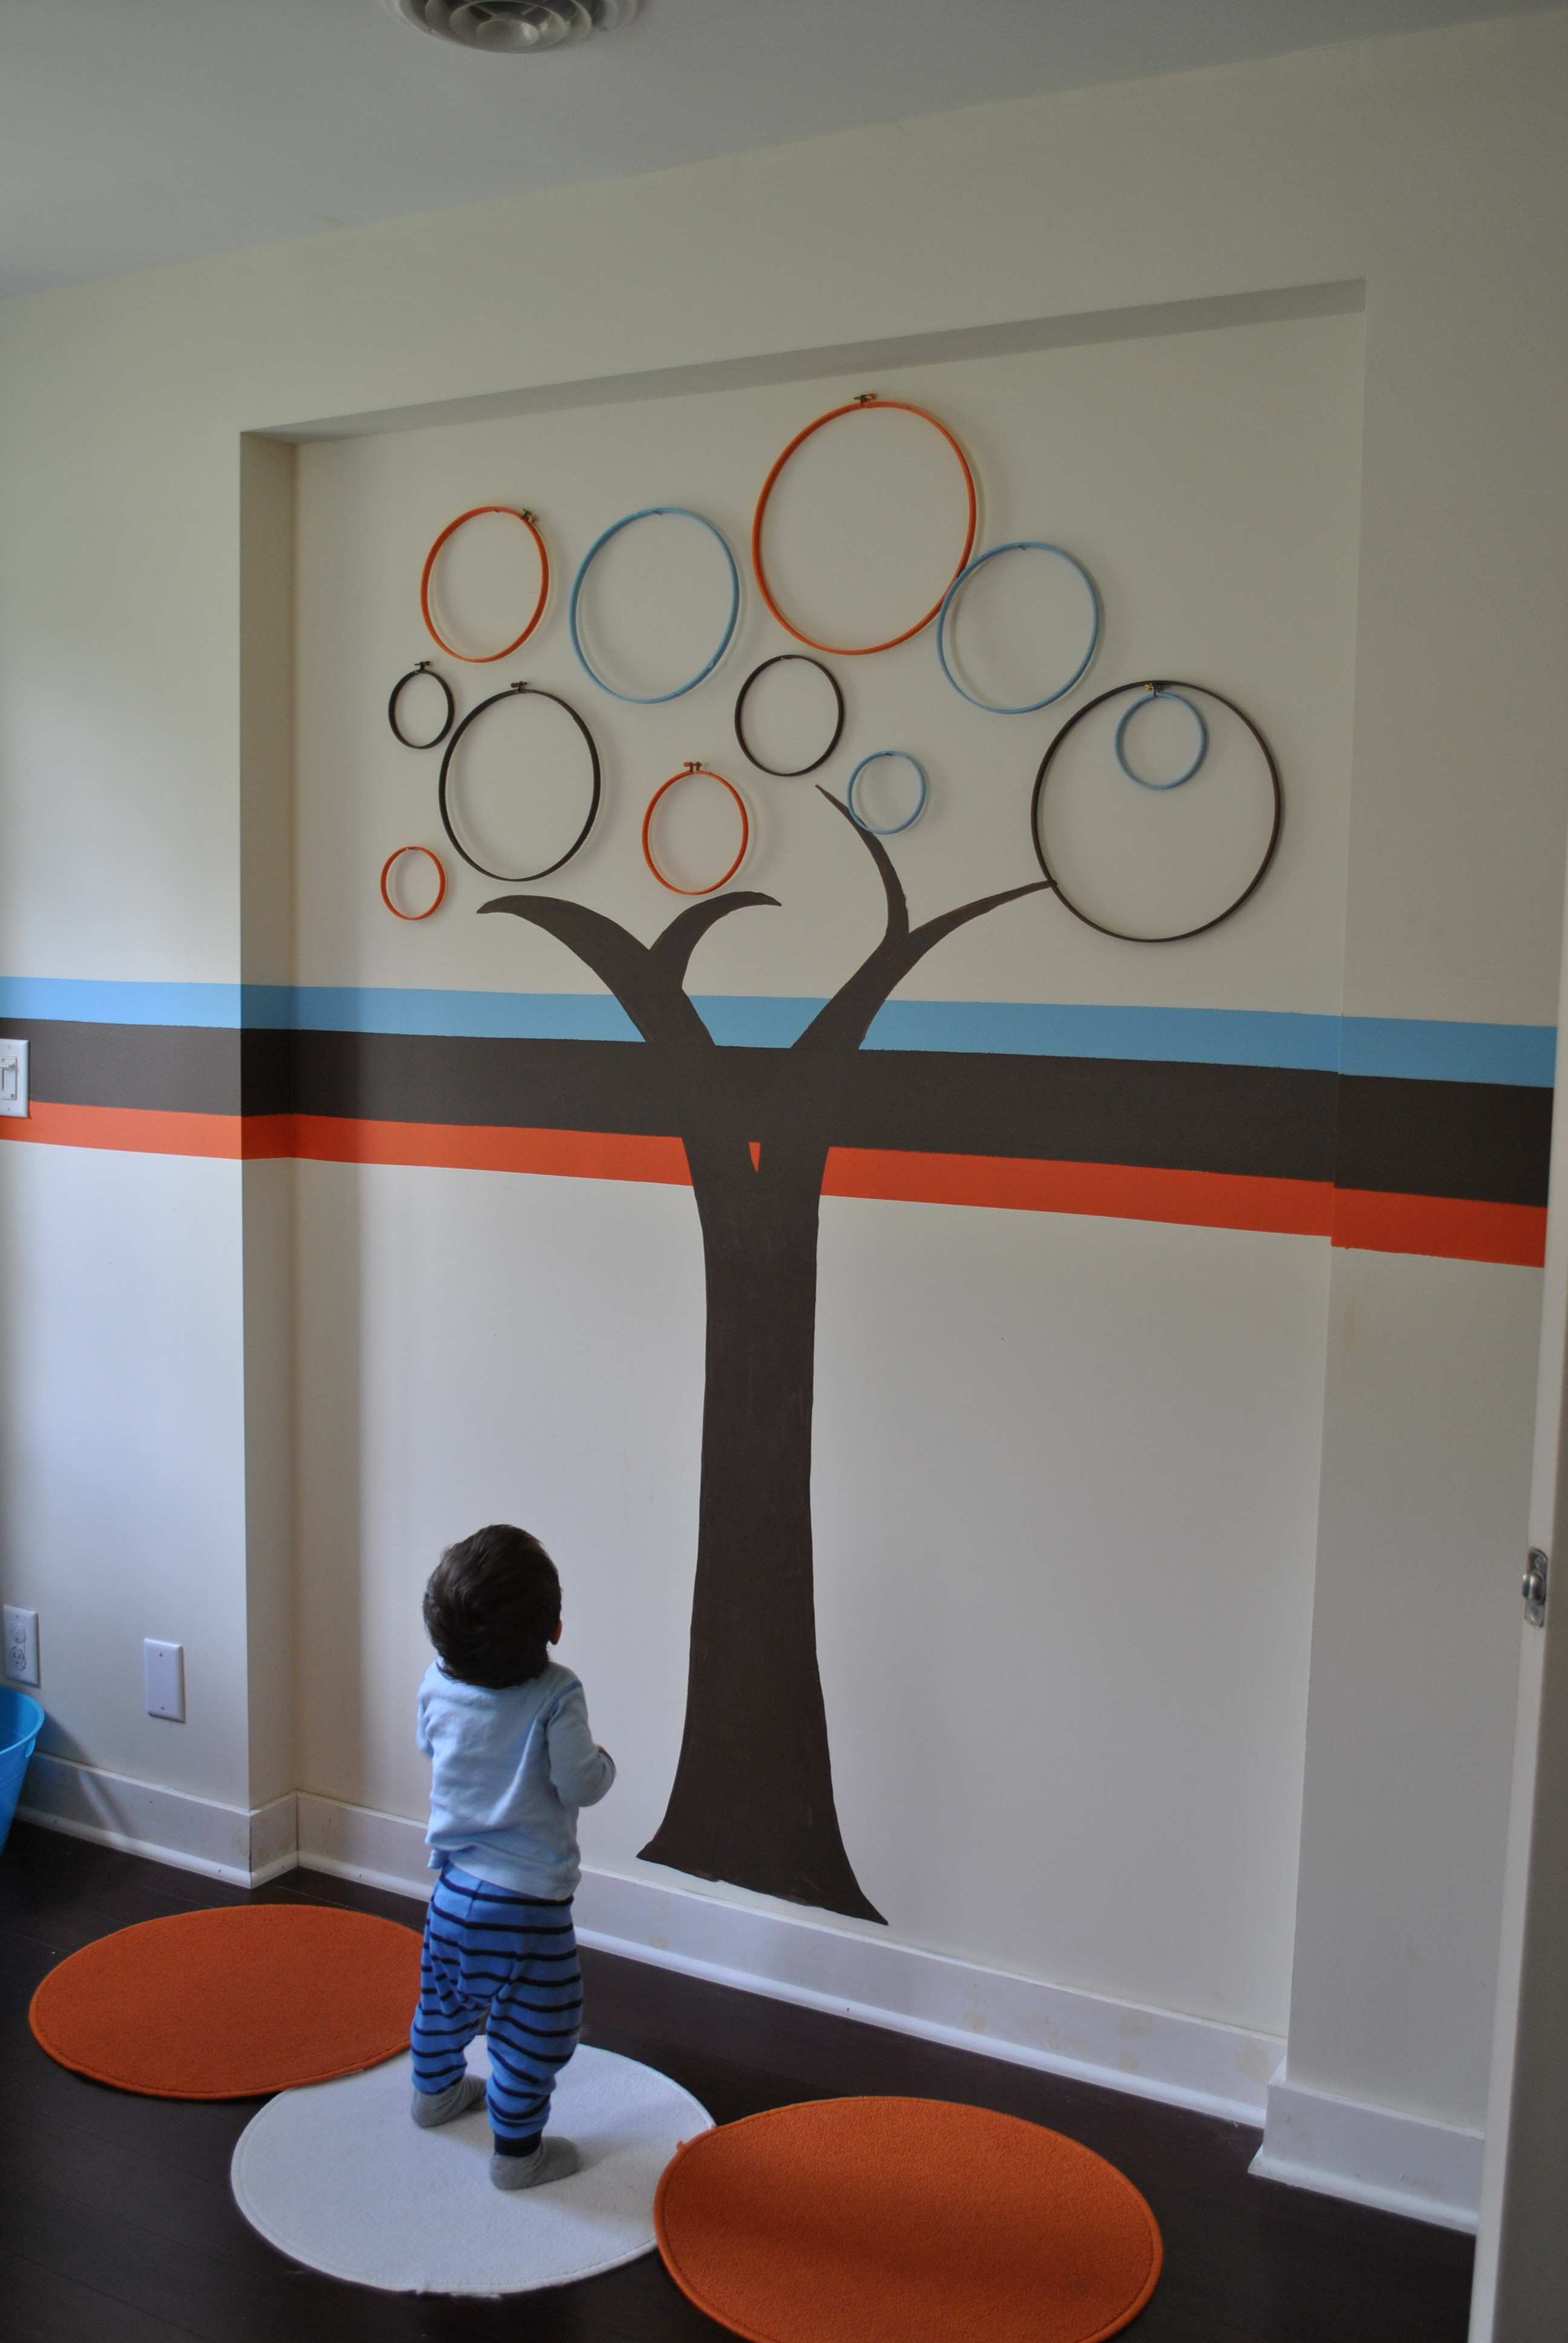 Cool Wall Painting Free Full Size Modernes Interior Wall